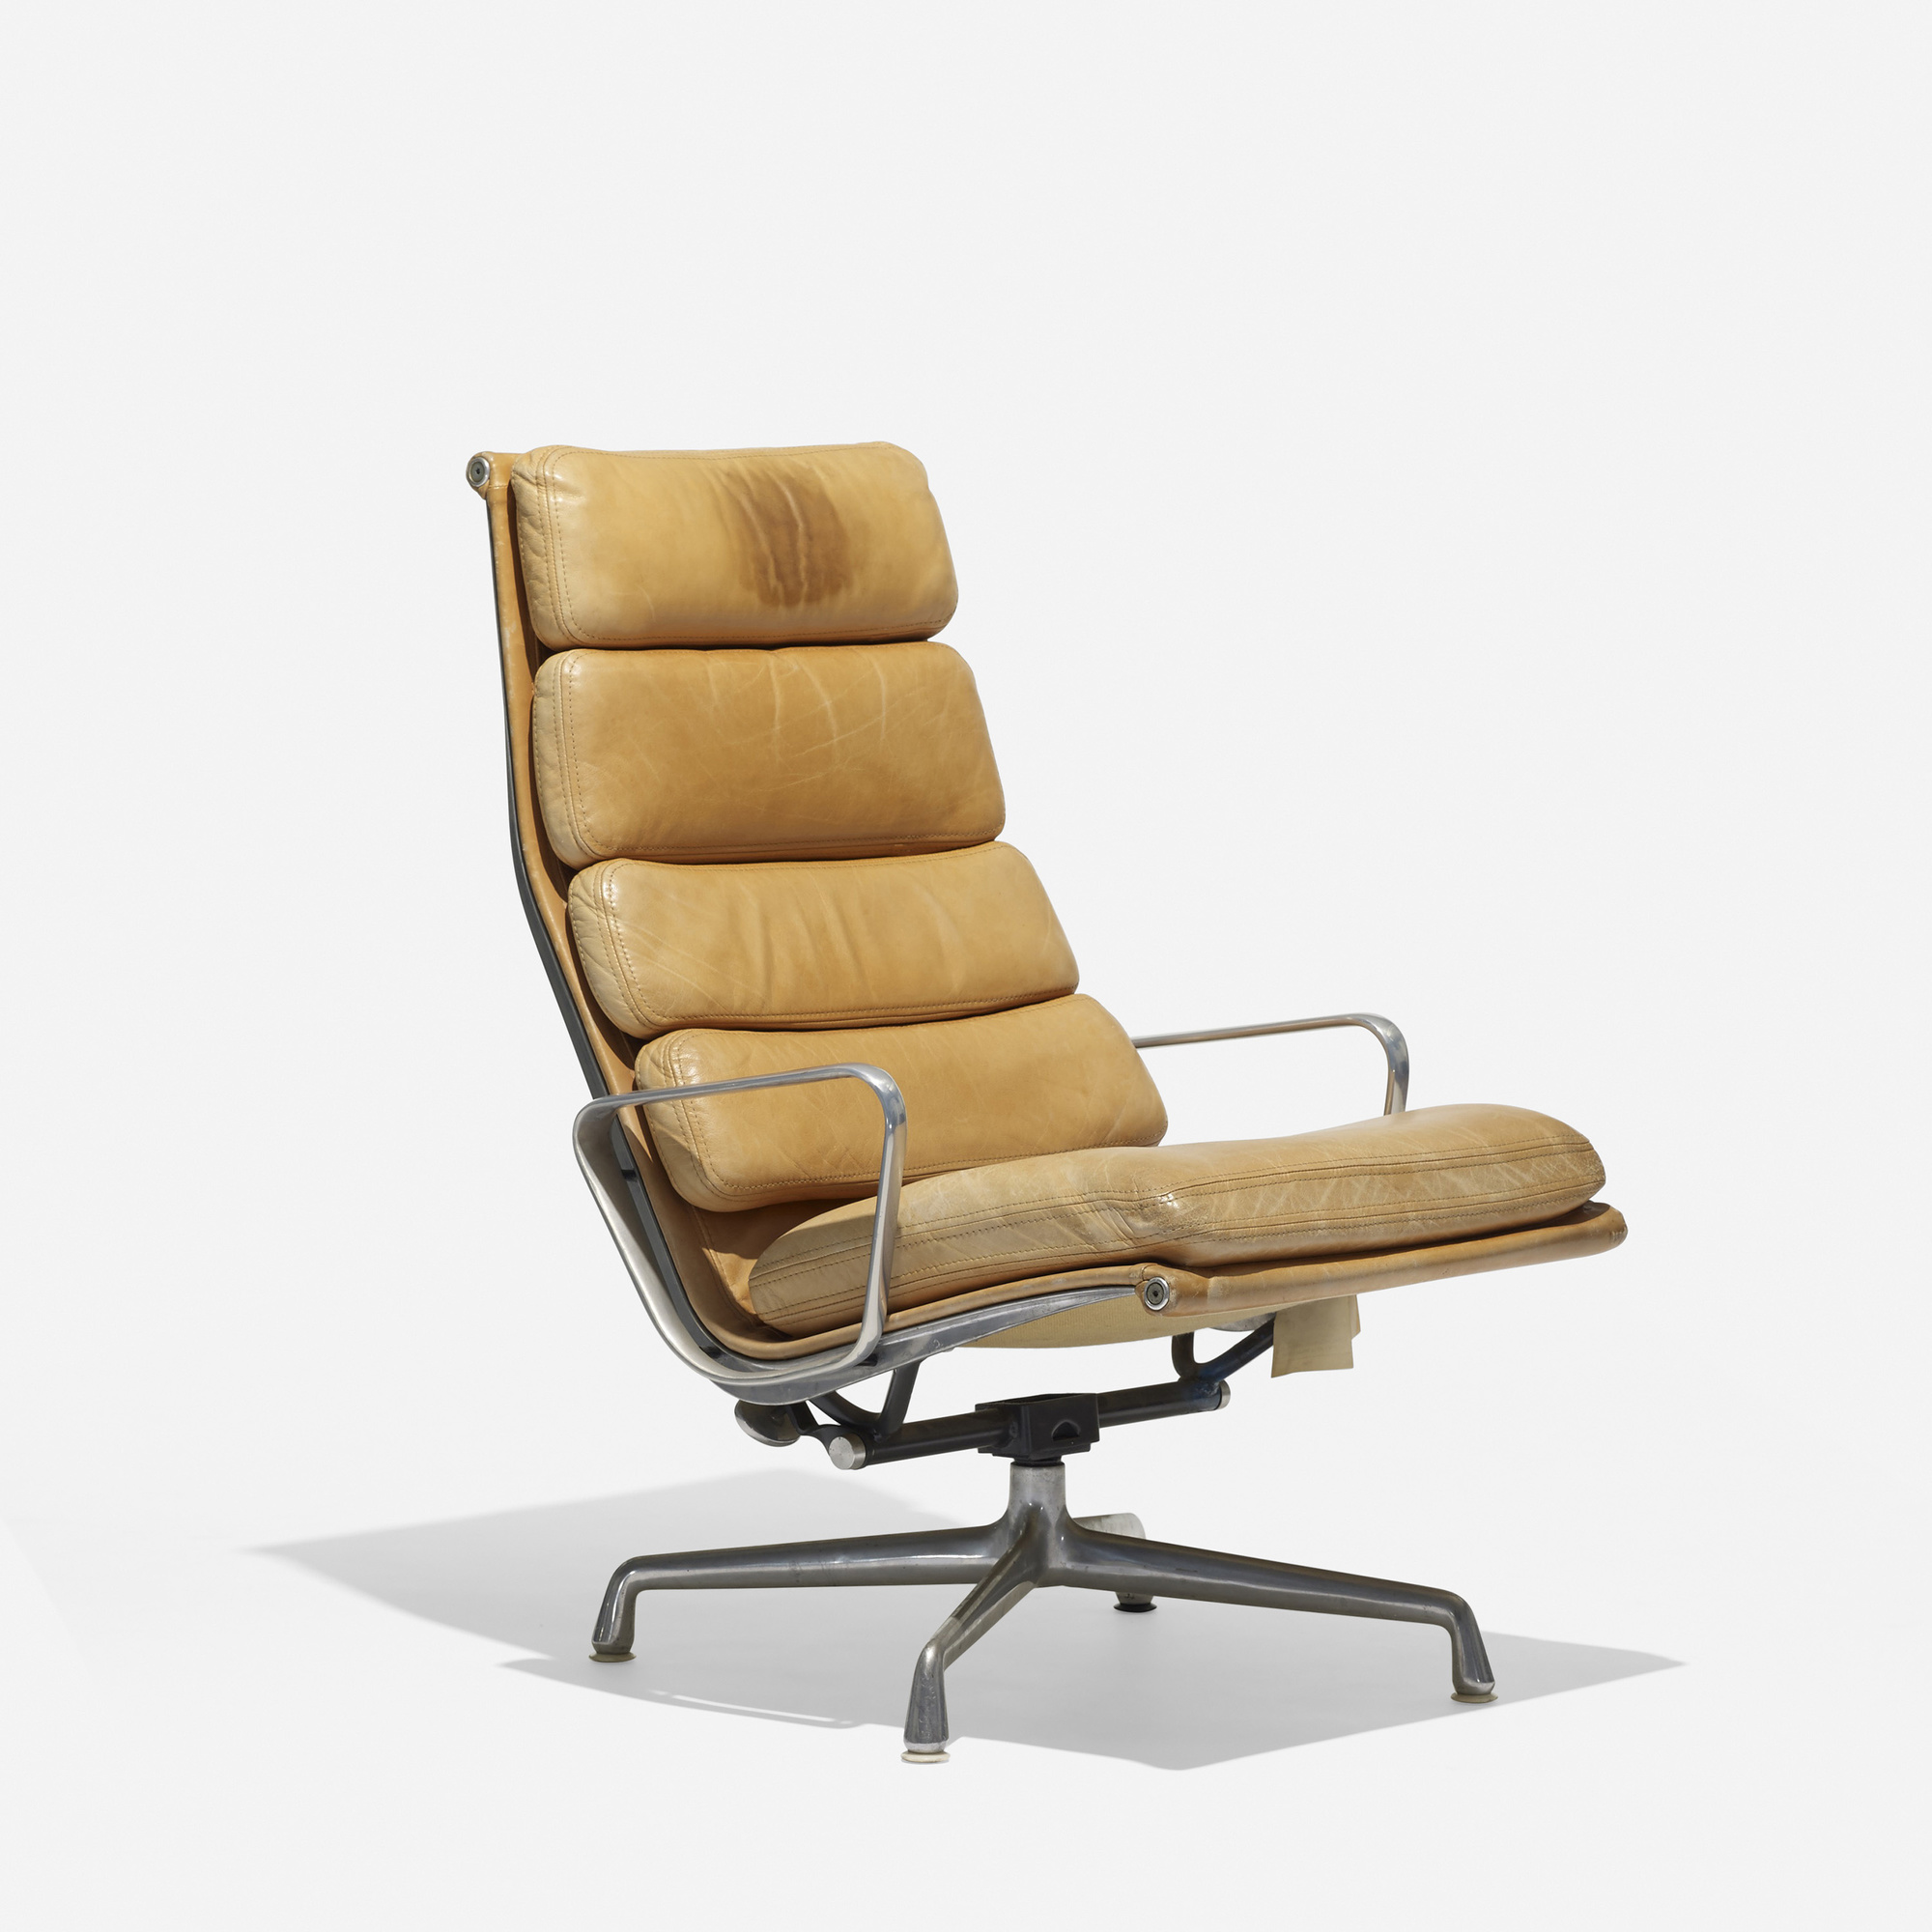 eames soft pad lounge chair. 247: Charles And Ray Eames / Soft Pad Lounge Chair (1 Of 3) I